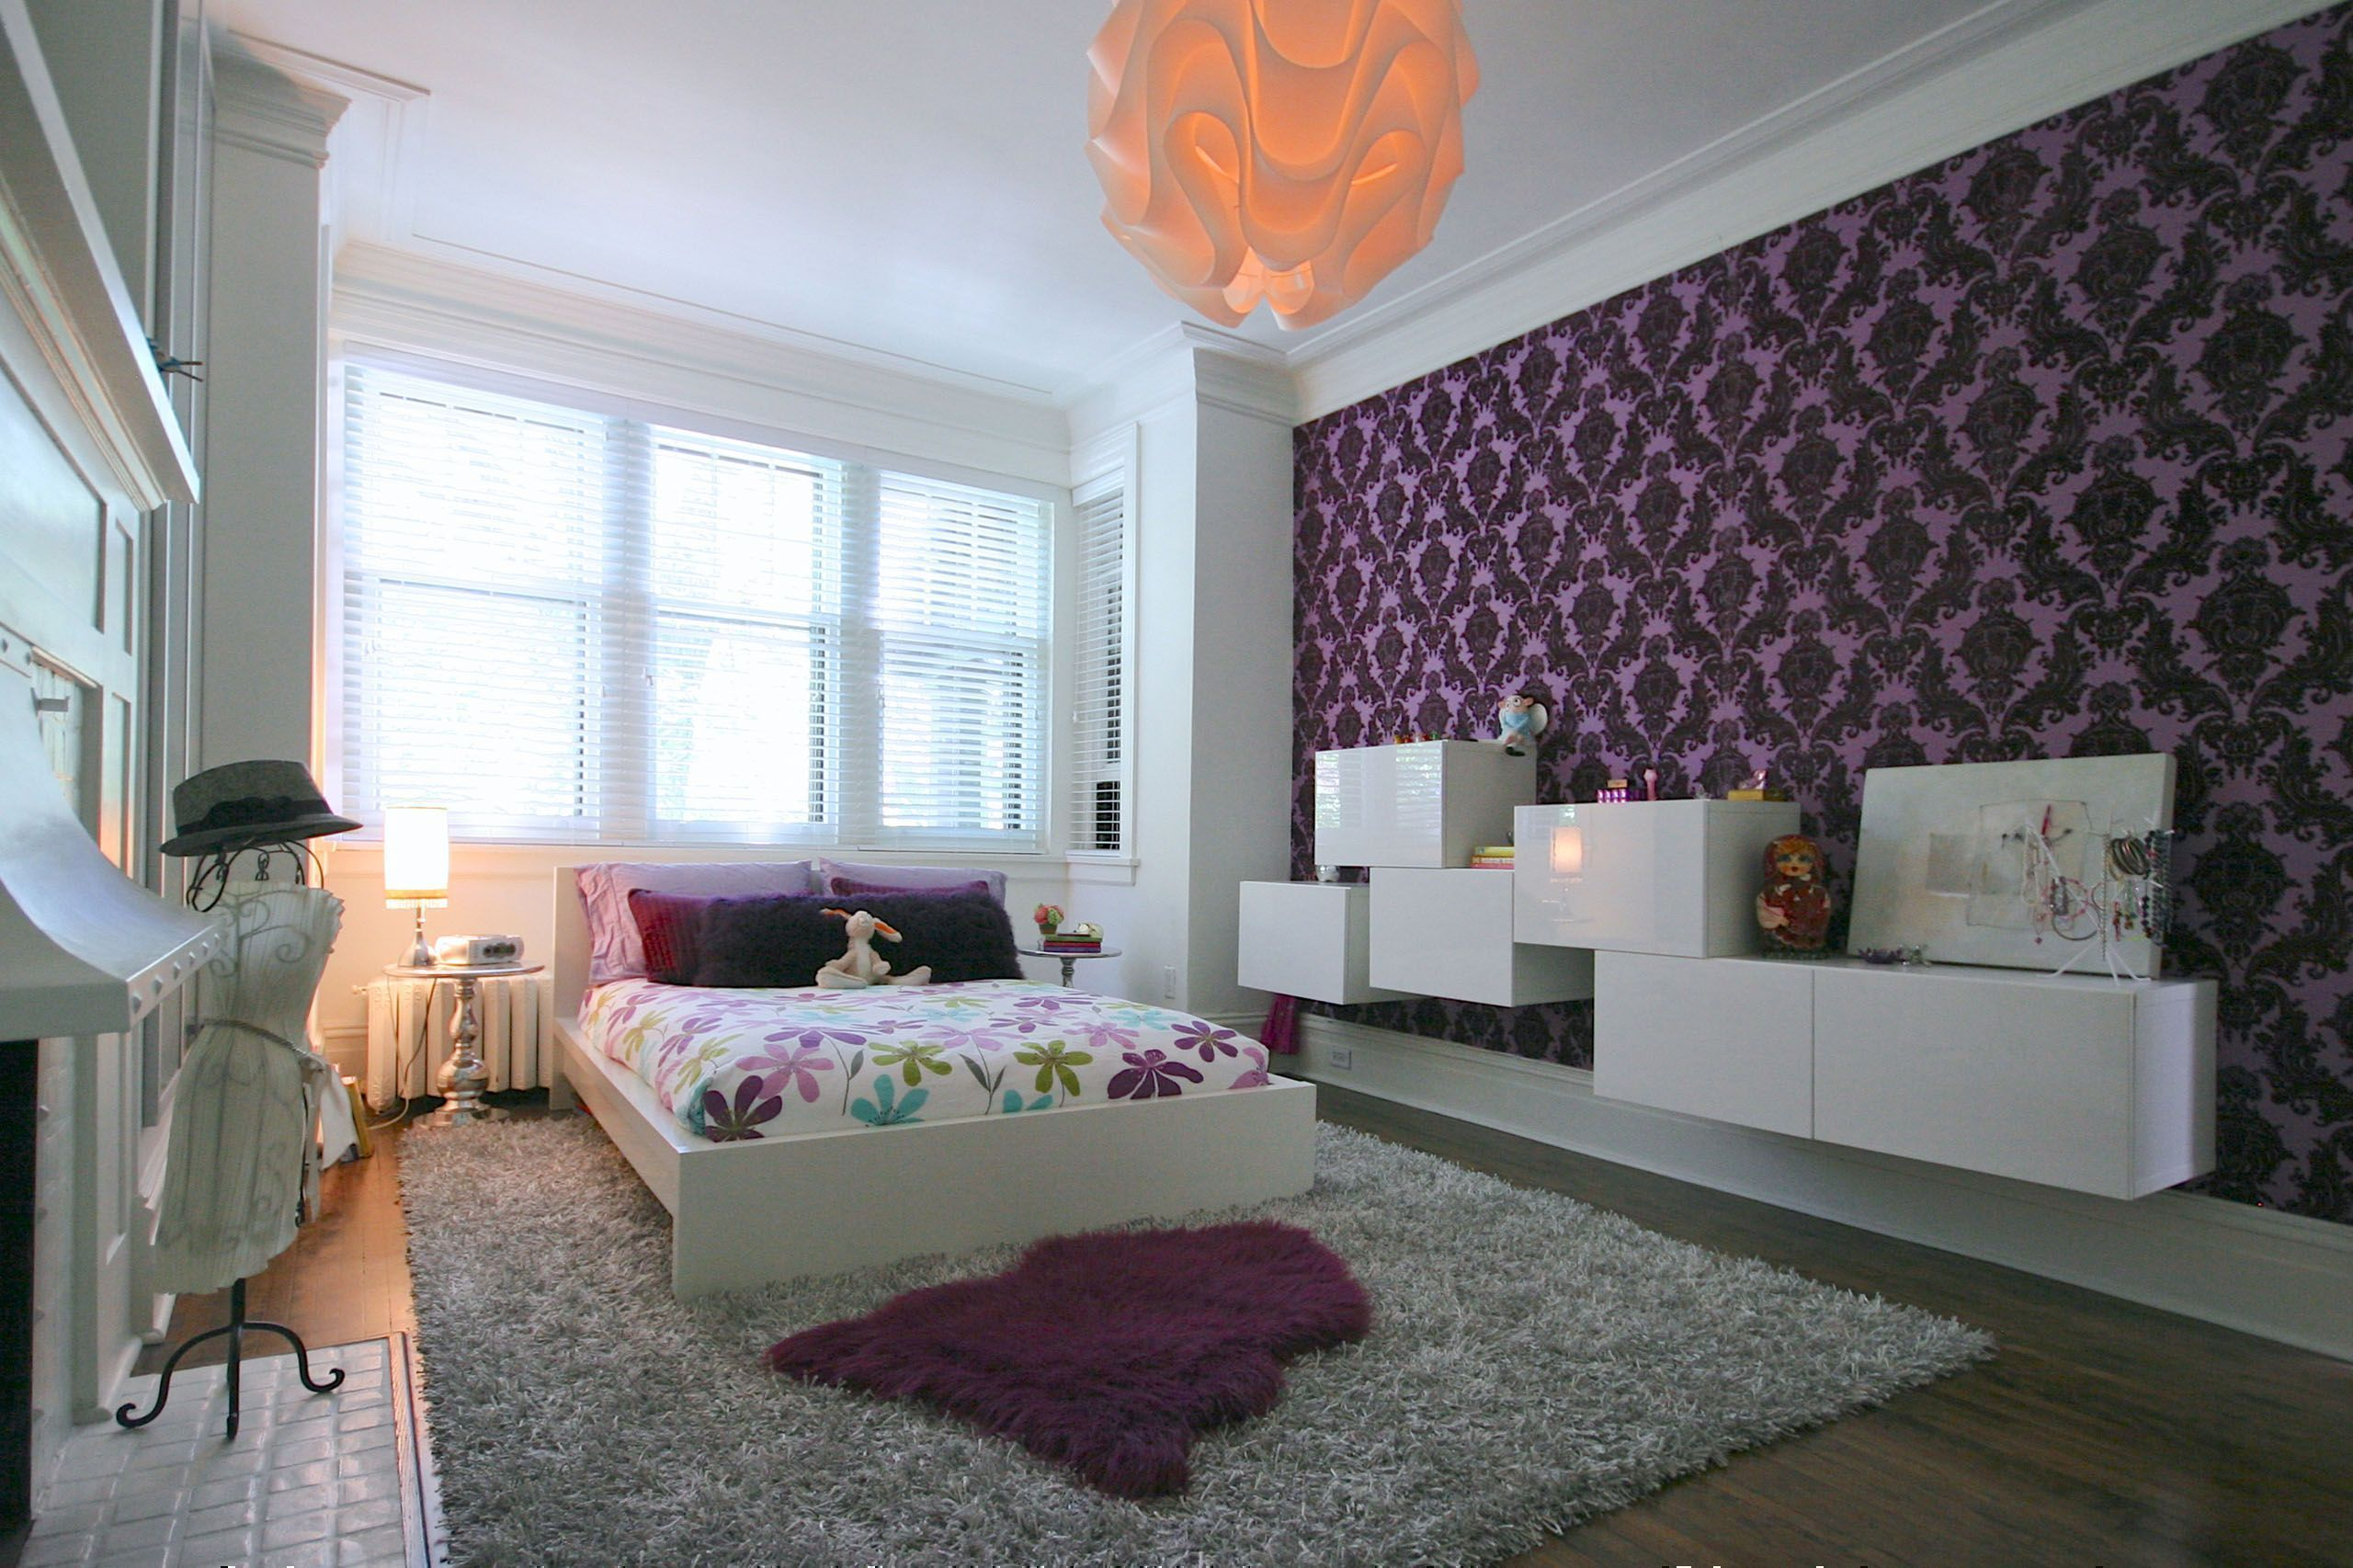 damask bedroom ideas. Bedroom Kids With Damask Decorating Idea Using Wallpaper And  Colorful Flower Sheet Bring Back